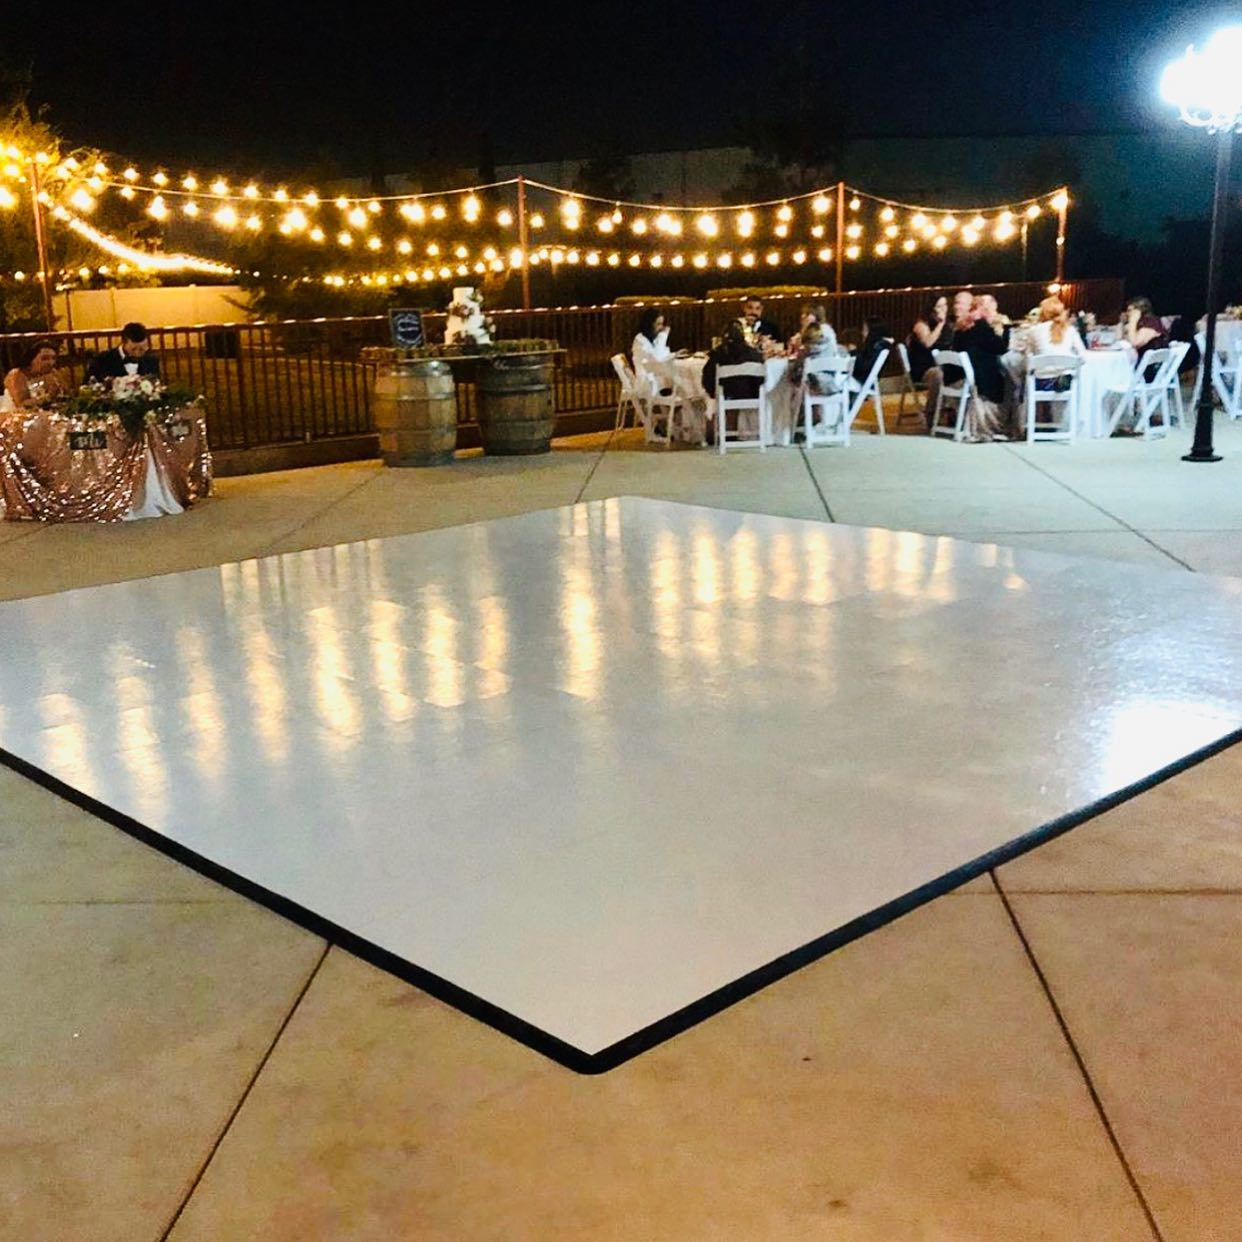 Slate White style dance floor is ready for dancing at this nighttime wedding reception.